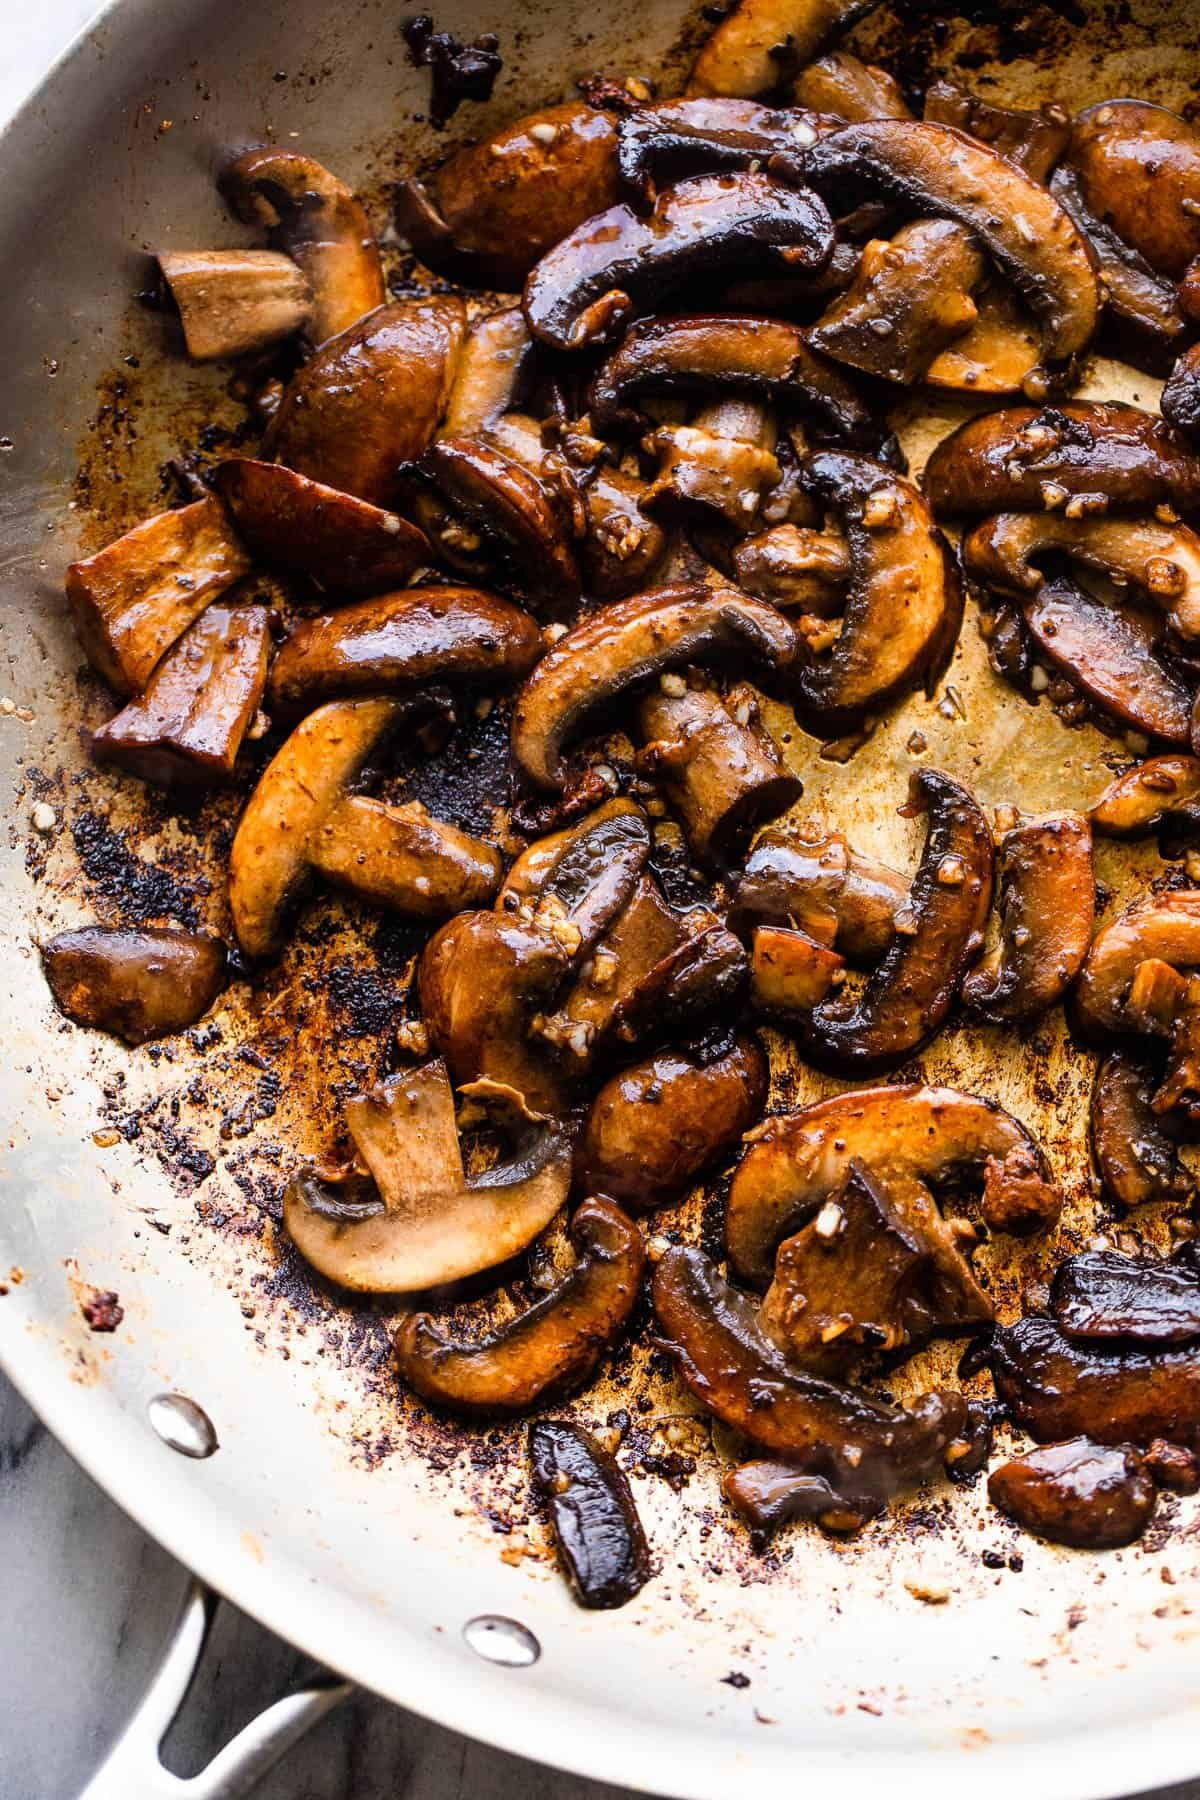 sauteeing mushrooms in a skillet